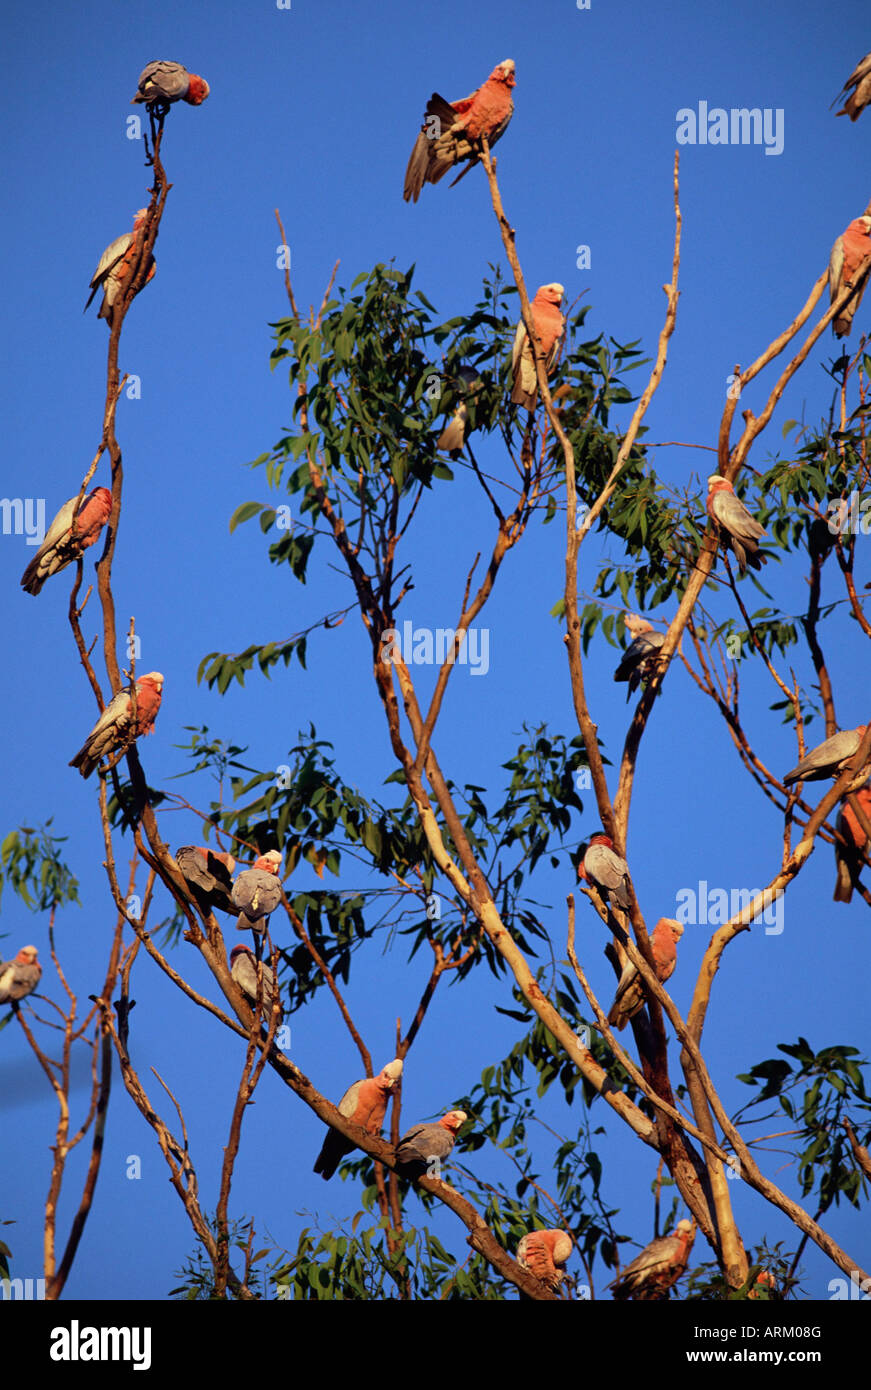 Galahs, Cacatua roseicapilla, Batchelor, Northern Territory, Australia, Pacific - Stock Image